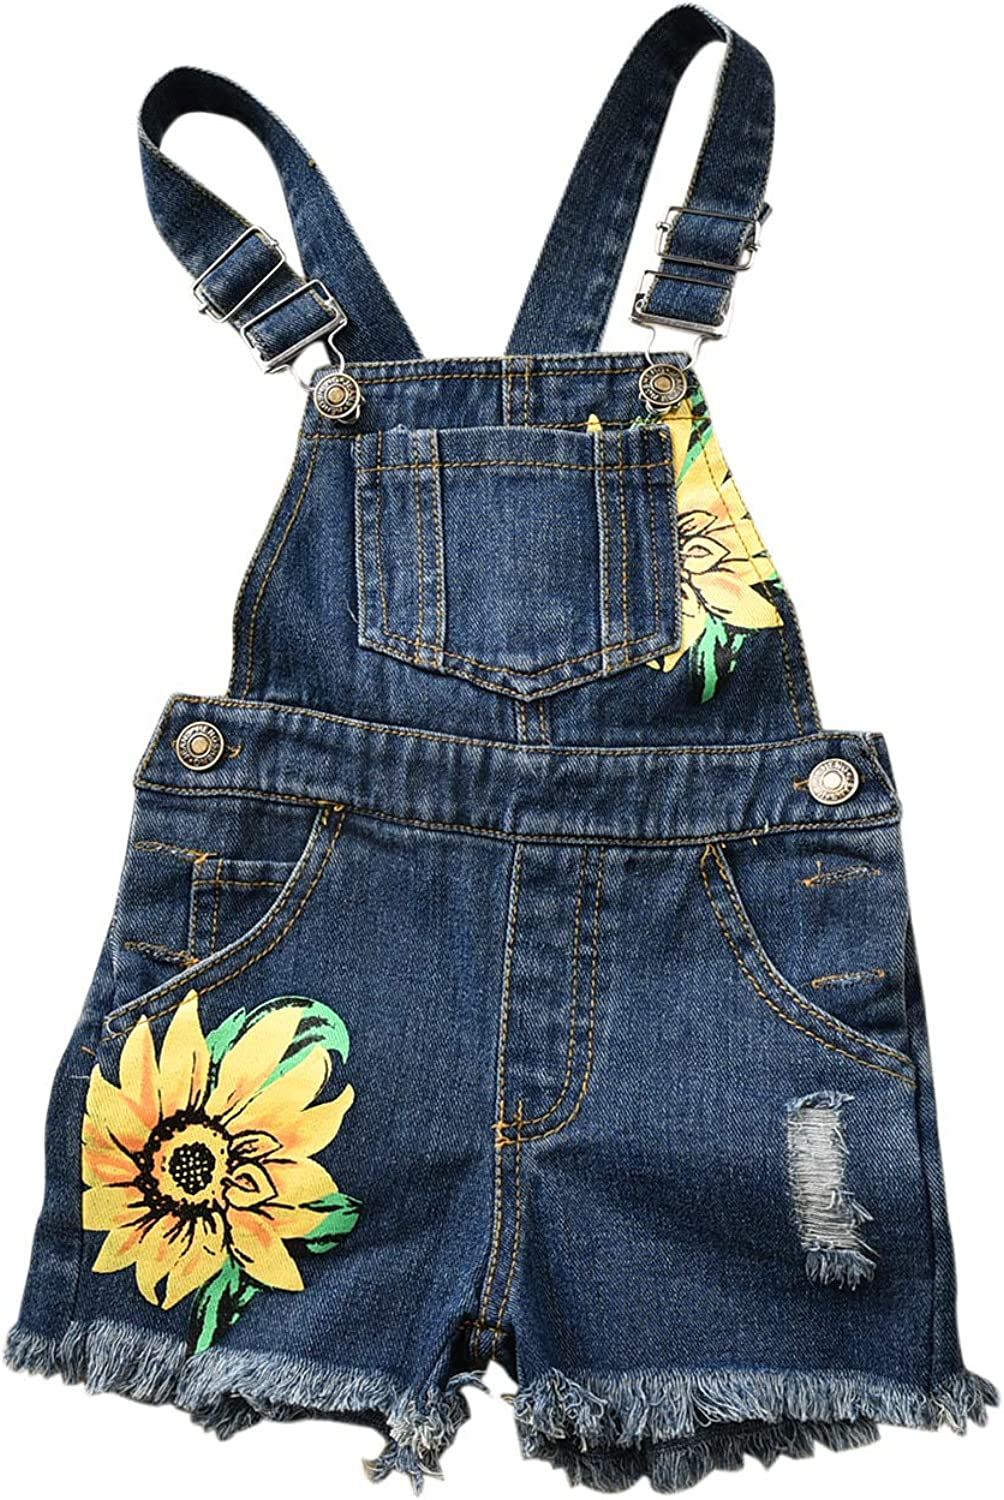 Handmade Kids Short Dungarees In Faded Red Linen /& Cotton With Safari Jungle Animal Print Toddlers Unisex Neutral Dungarees For Children